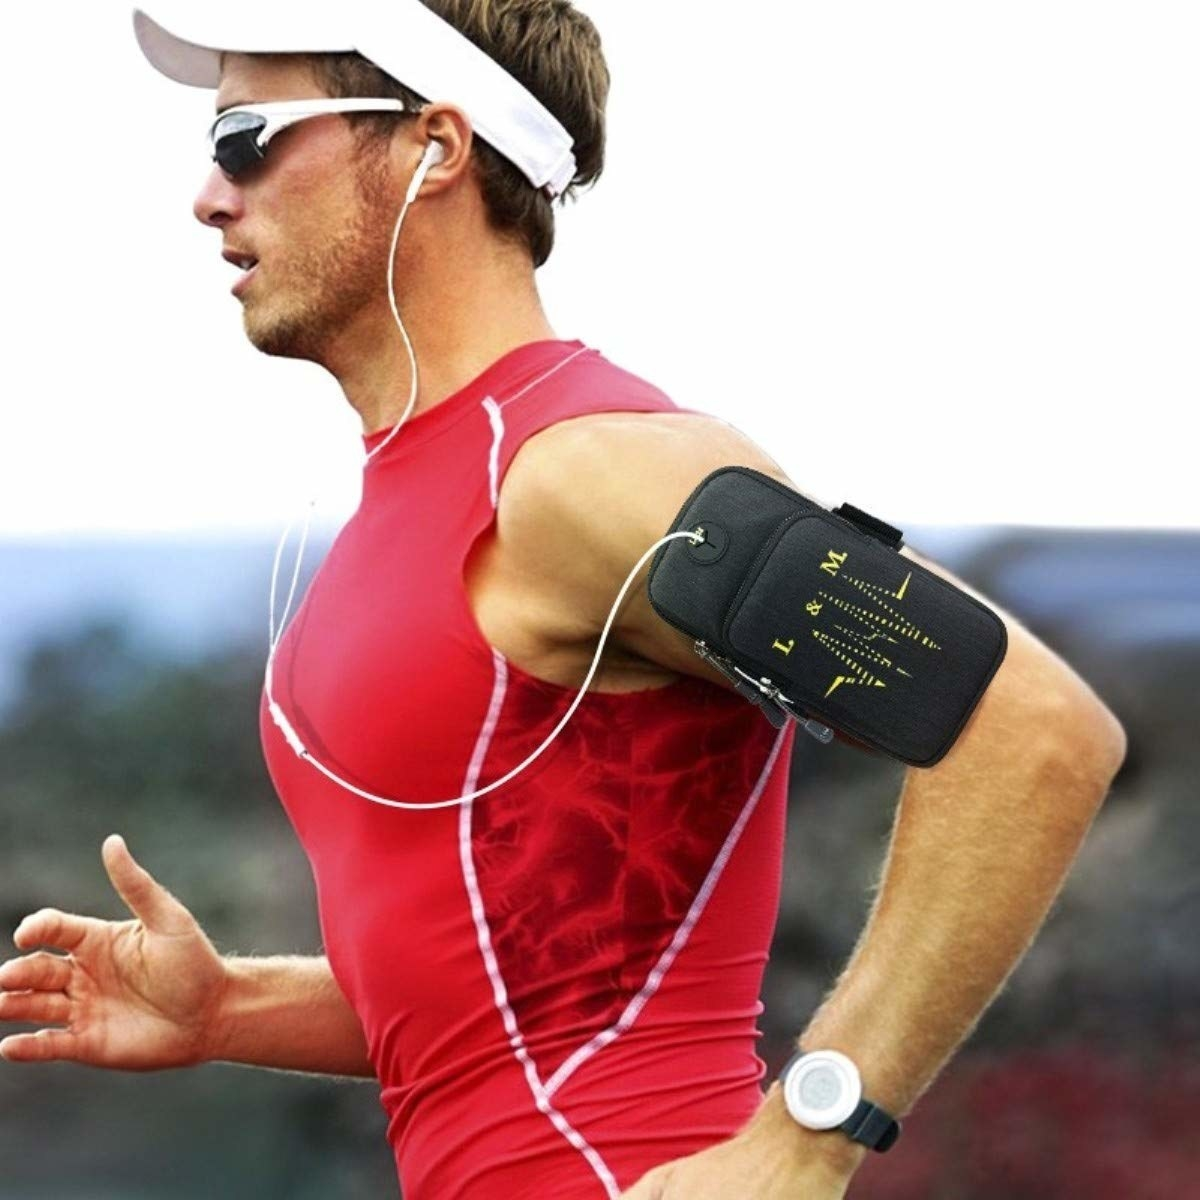 A man running with the zipped armband that contains a phone and connected earphones